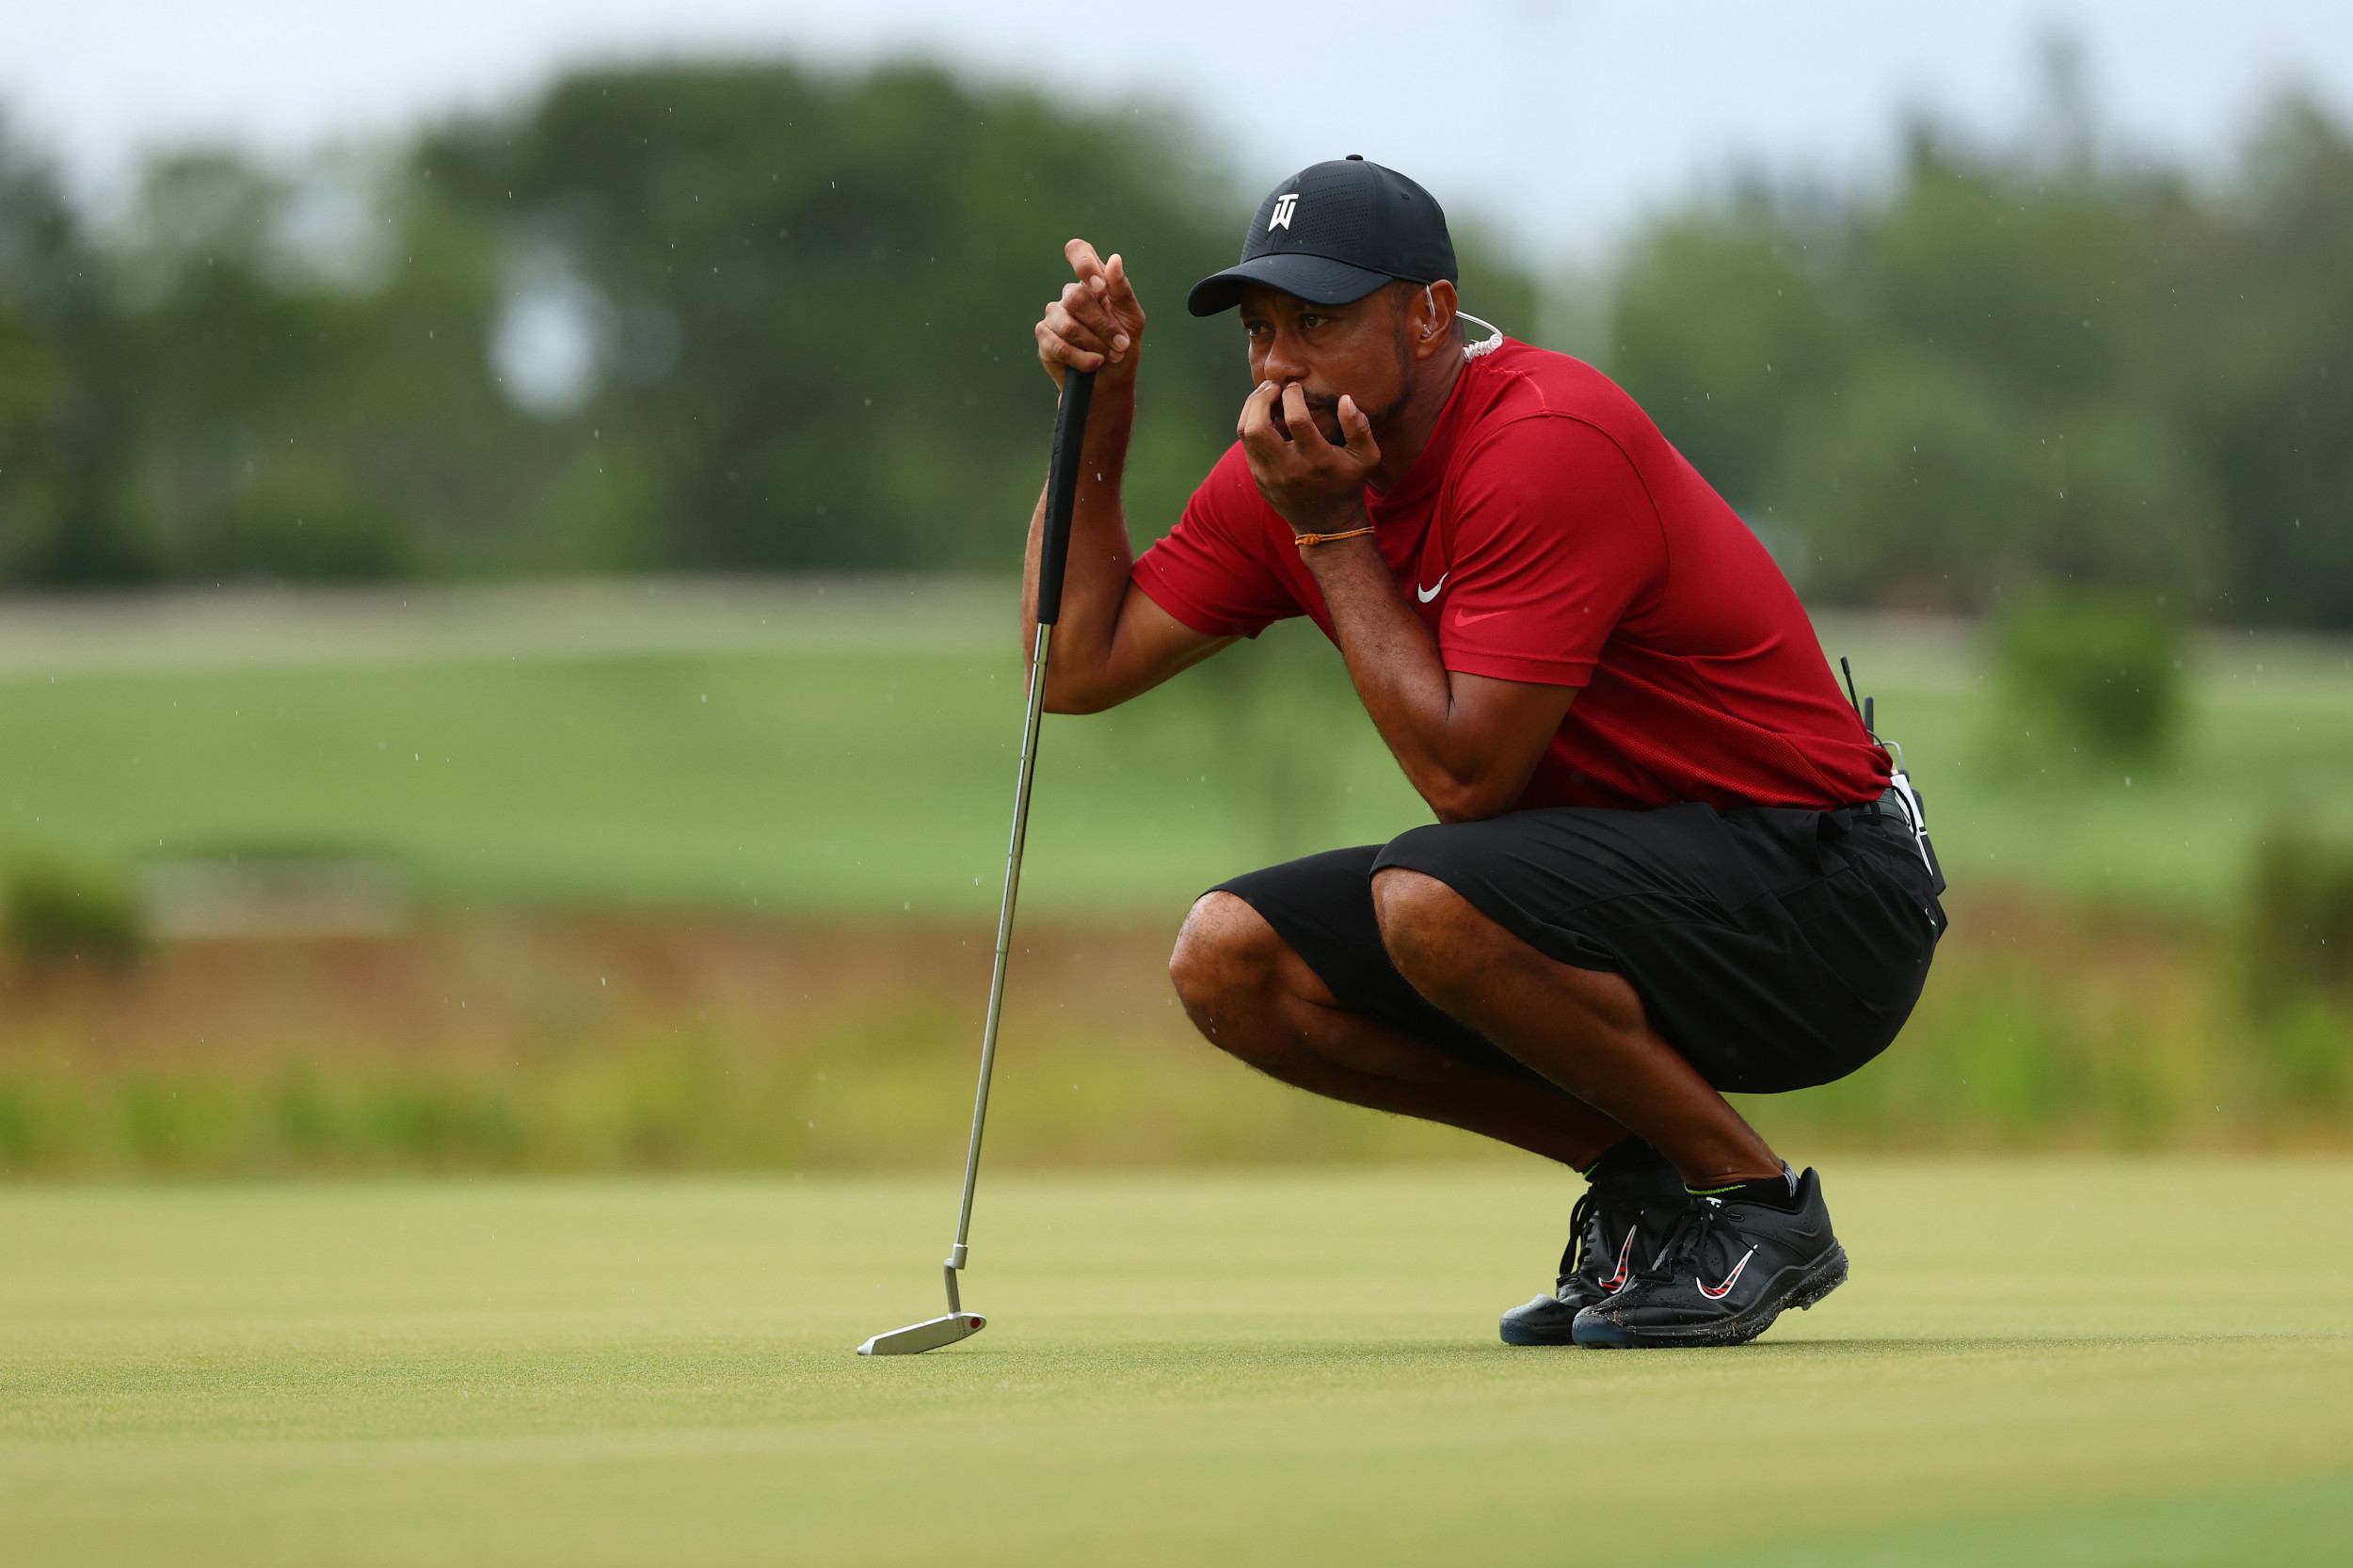 When Will Tiger Woods Play Next In 2020 15 Time Major Winner Postpones Return To Pga Tour By Another Week